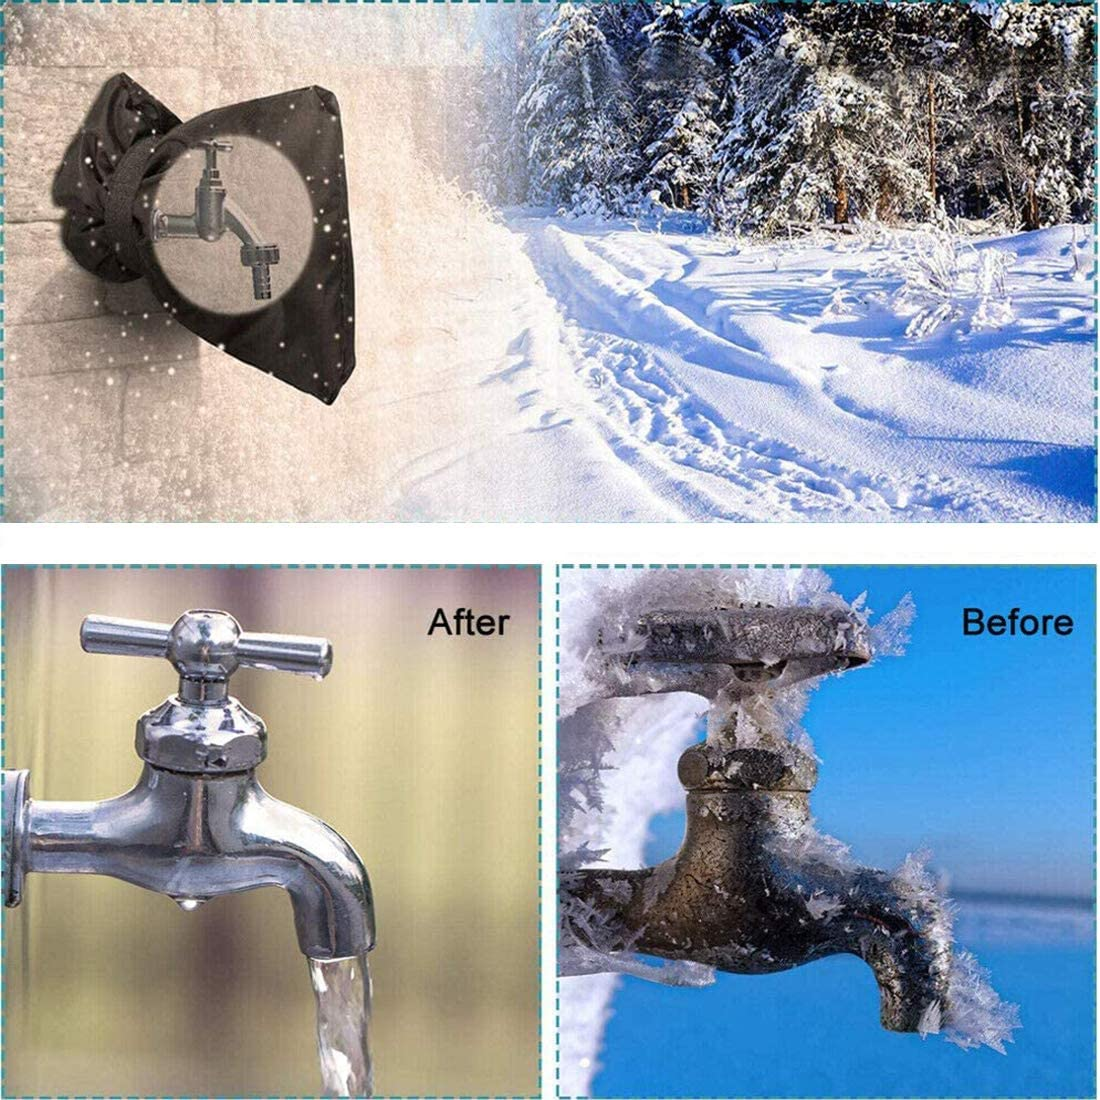 Pipe Insulation Freeze Protection Anti-Freeze Hose Bib Black Reusable Waterproof Insulated Spigot backflow Cover LEOTHER 4 Pack Outdoor Faucet Cover Winter Heavy Duty Nylon Oxford Cloth